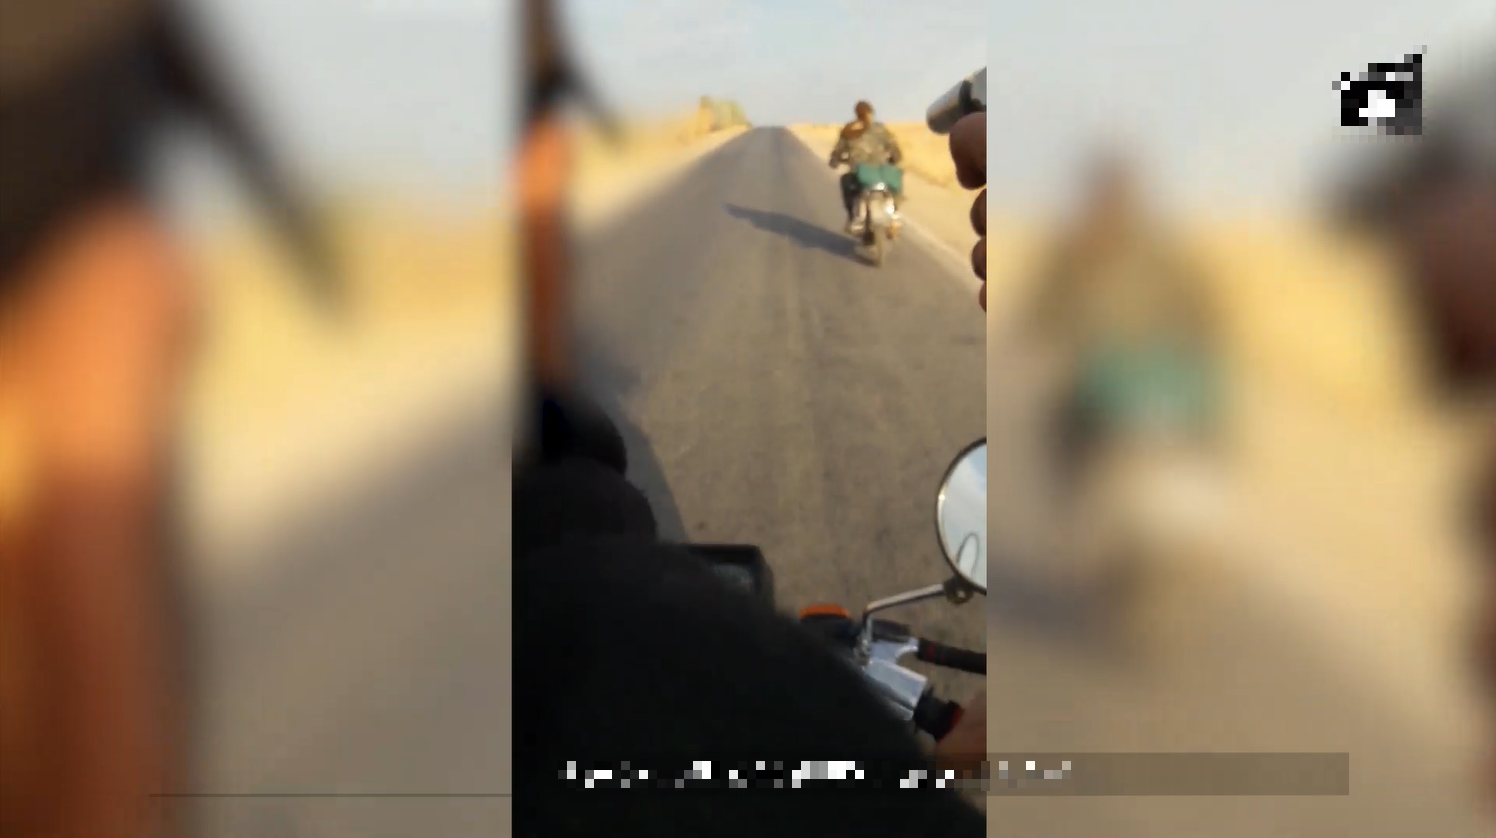 Epic Of Attrition 3: New Video Release Documents Recent ISIS Attacks In Syria's Al-Hasakah